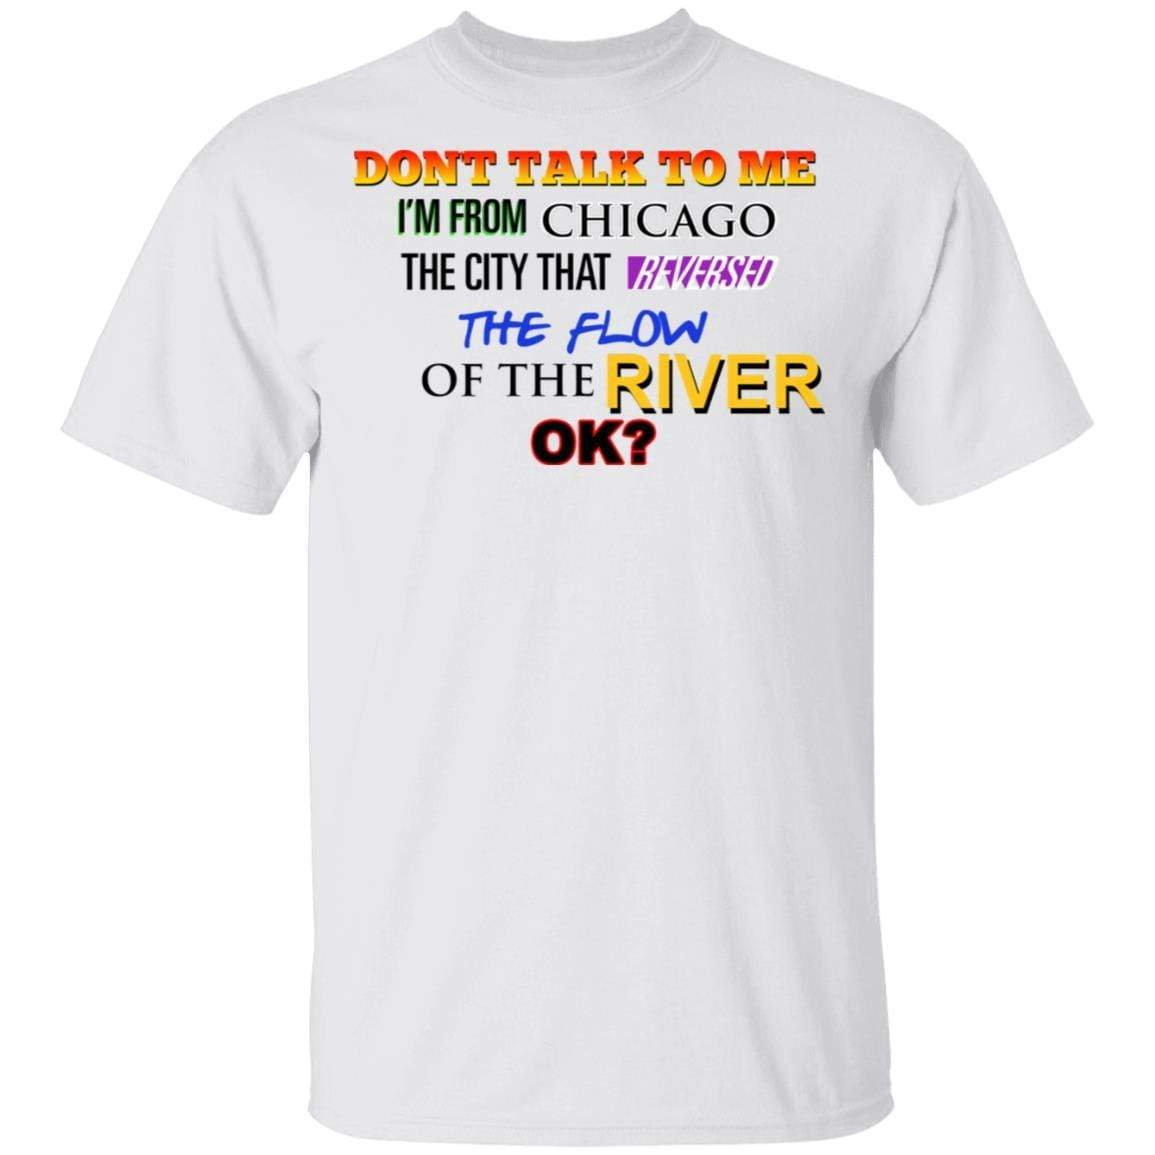 Don't Talk To Me I'm From Chicago The City That Reversed The Flow Of The River T-Shirts, Hoodies 1049-9974-90248040-48300 - Tee Ript